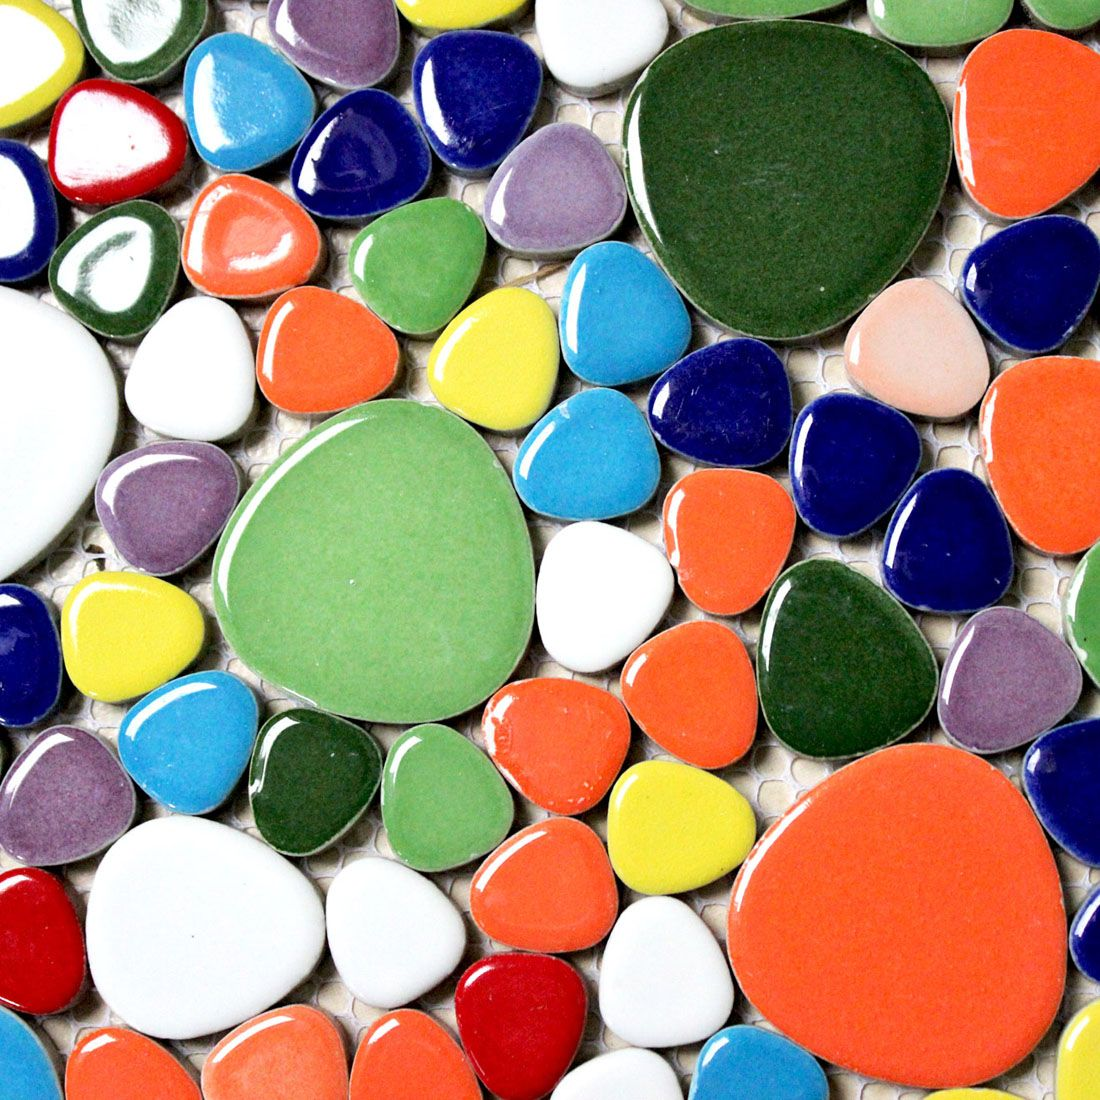 Irregular mixed ceramic mosaic tiles cobblestone stone multicolour irregular mixed ceramic mosaic tiles cobblestone stone multicolour balcony pool pebble floor tile bathroom kitchen backsplash doublecrazyfo Gallery